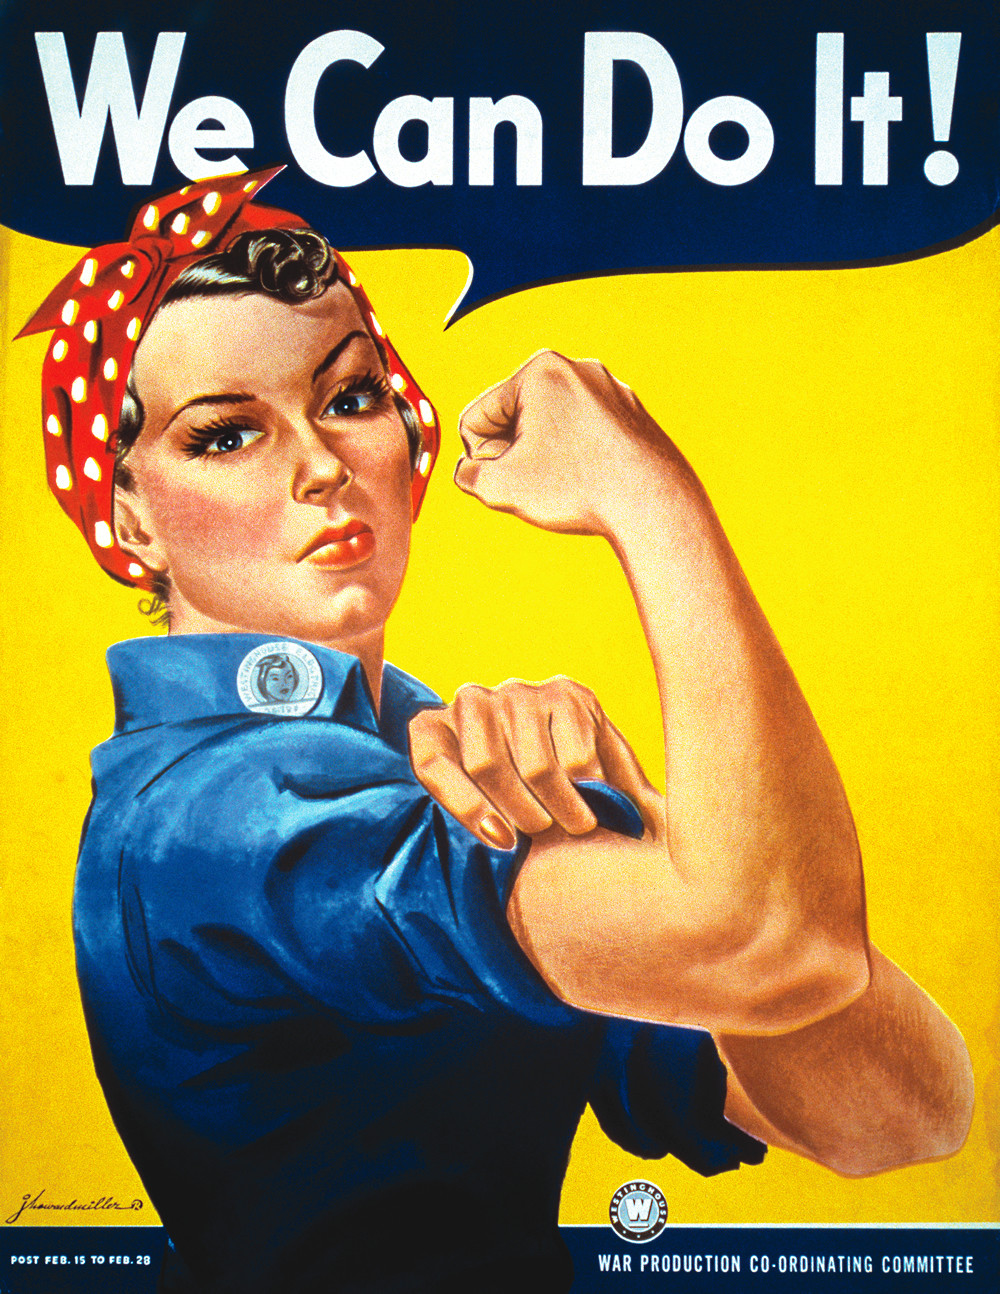 Empowerment: We Can Do It